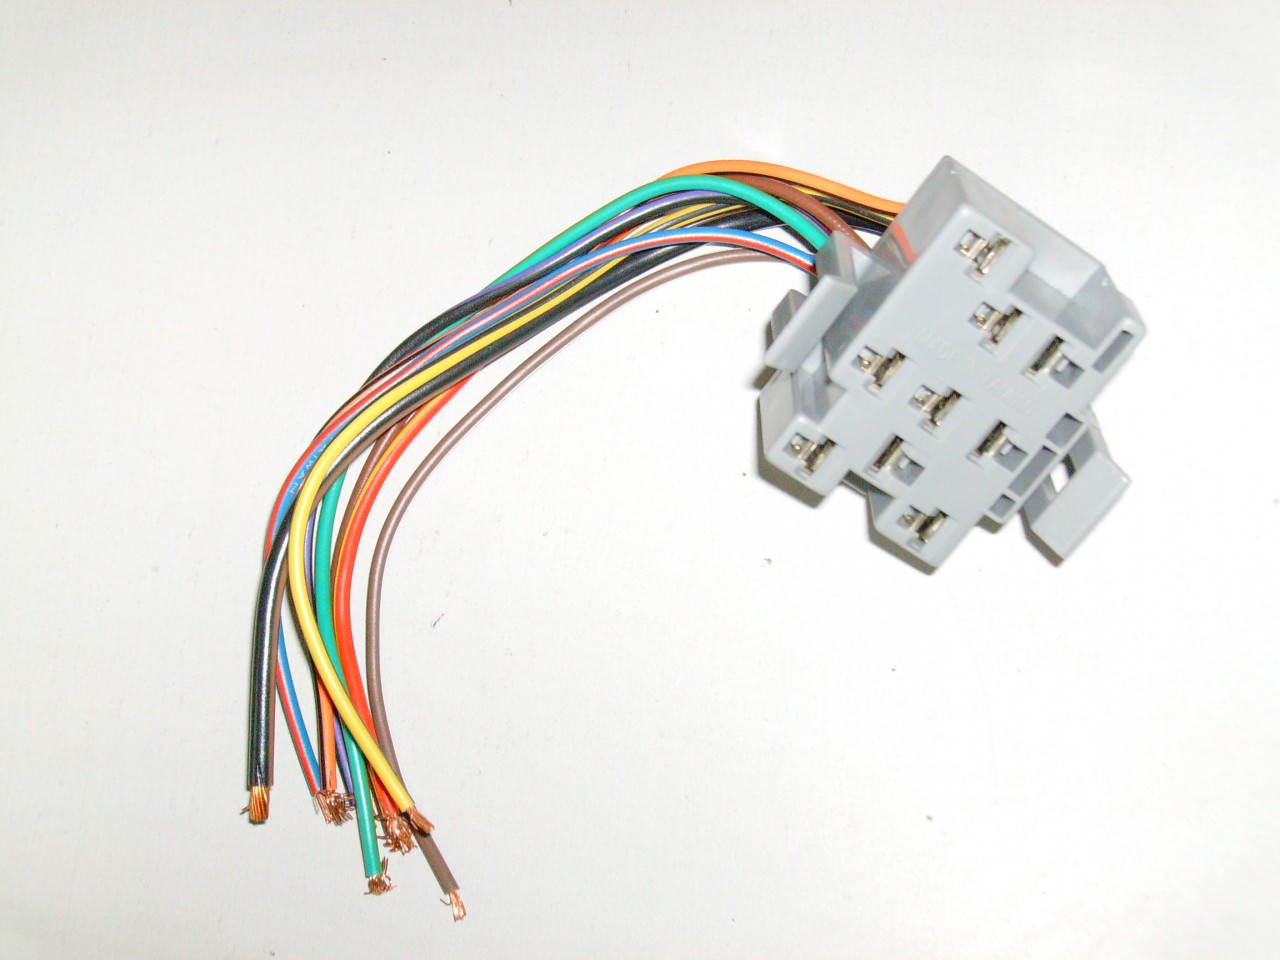 hight resolution of 1994 1998 ford mustang headlight switch plug wire harness socket gt lx cobra price 25 98 image 1